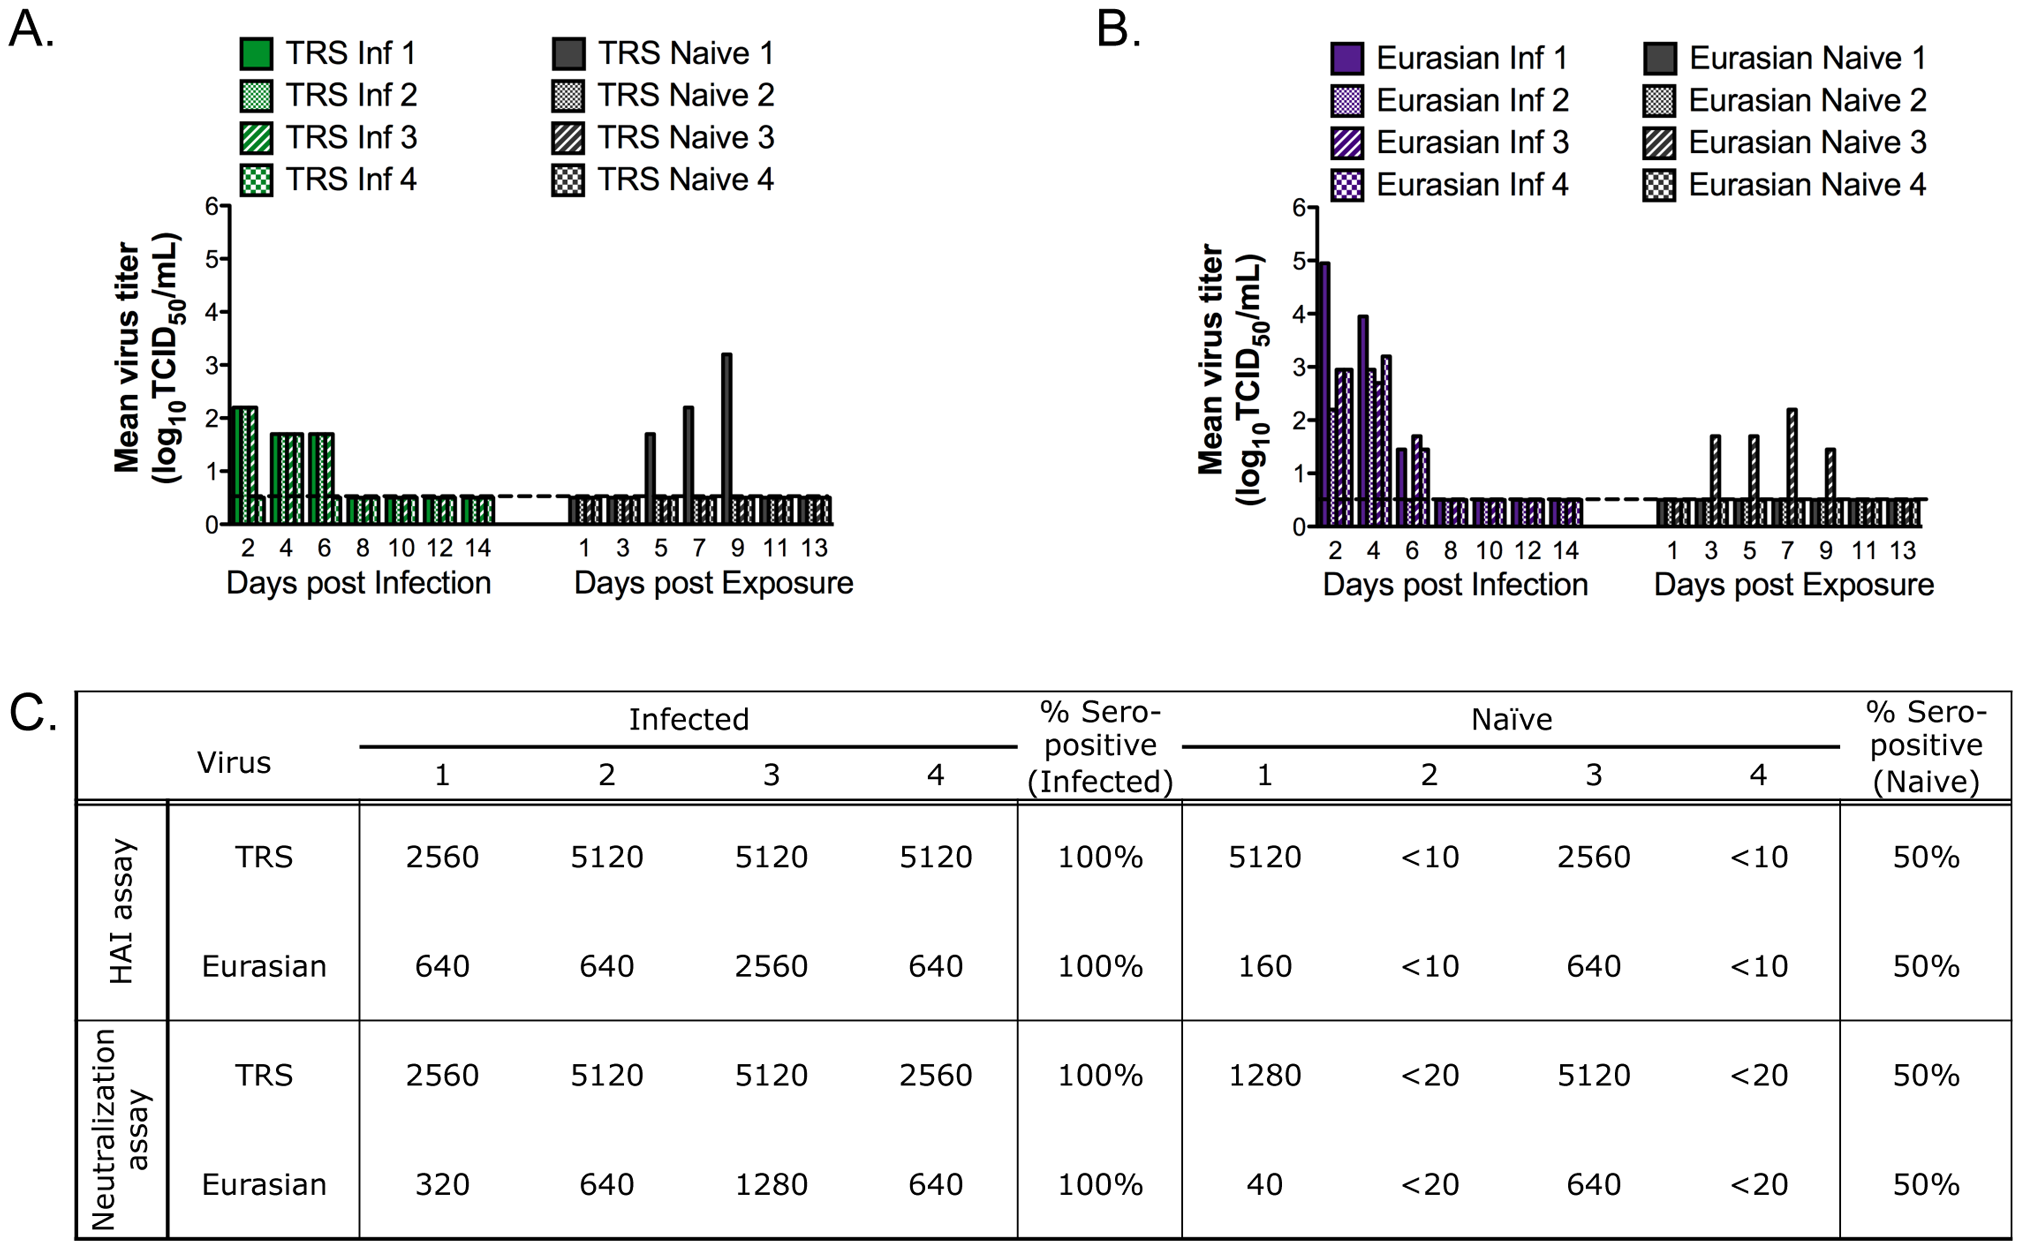 Pandemic precursor viruses transmit to 50% of exposed ferrets by RD.